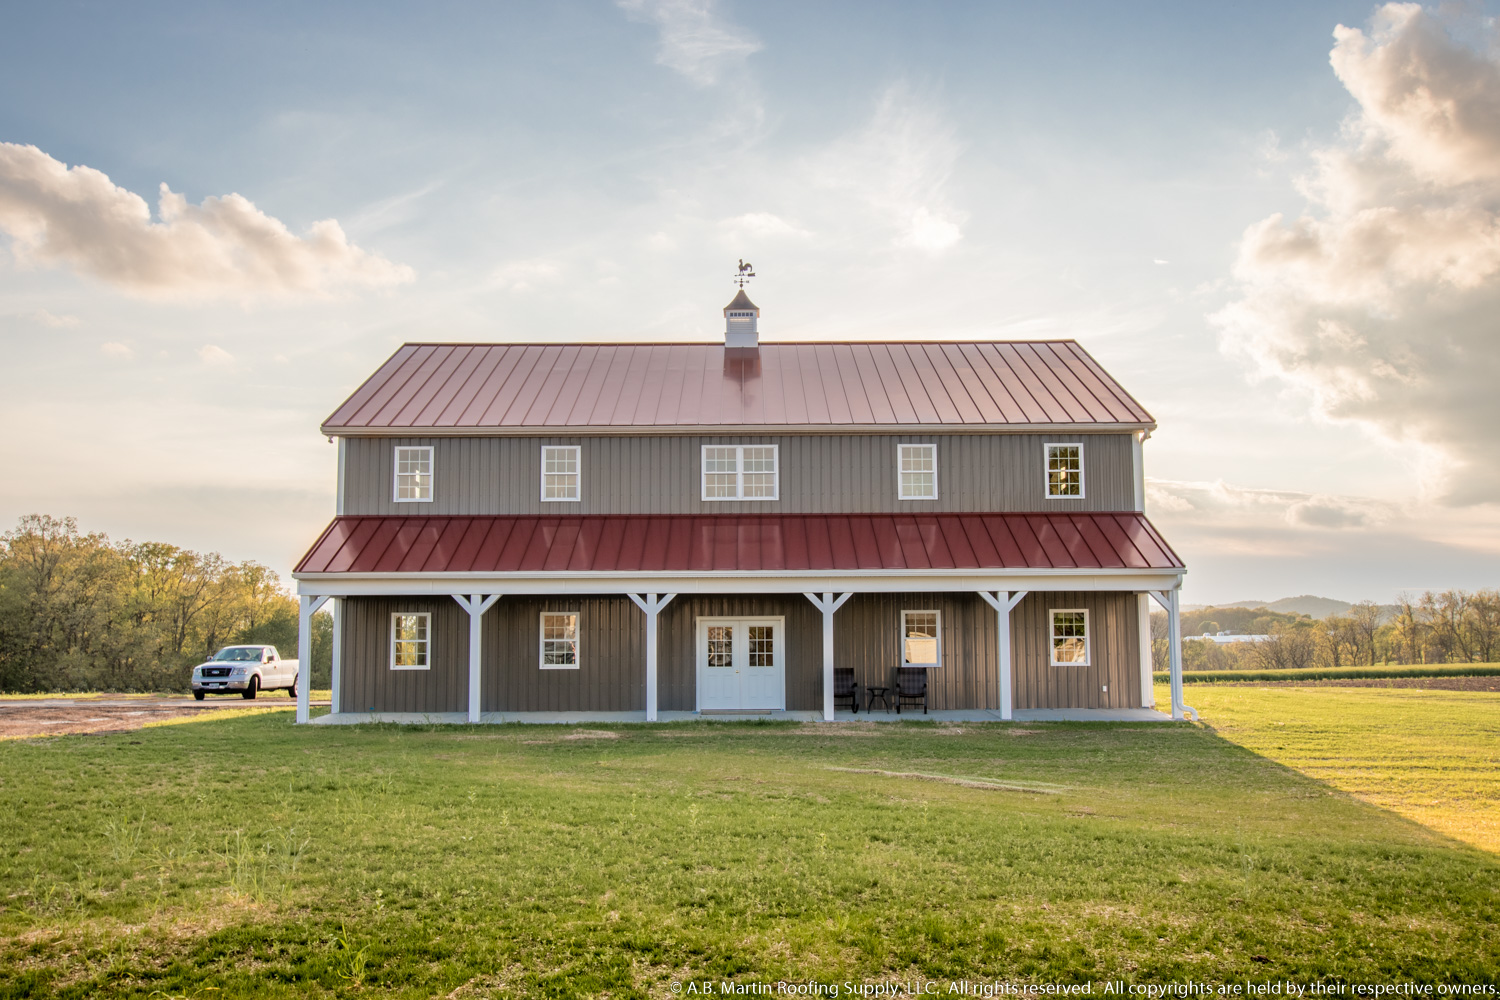 2 Story Barn With Standing Seam Roof